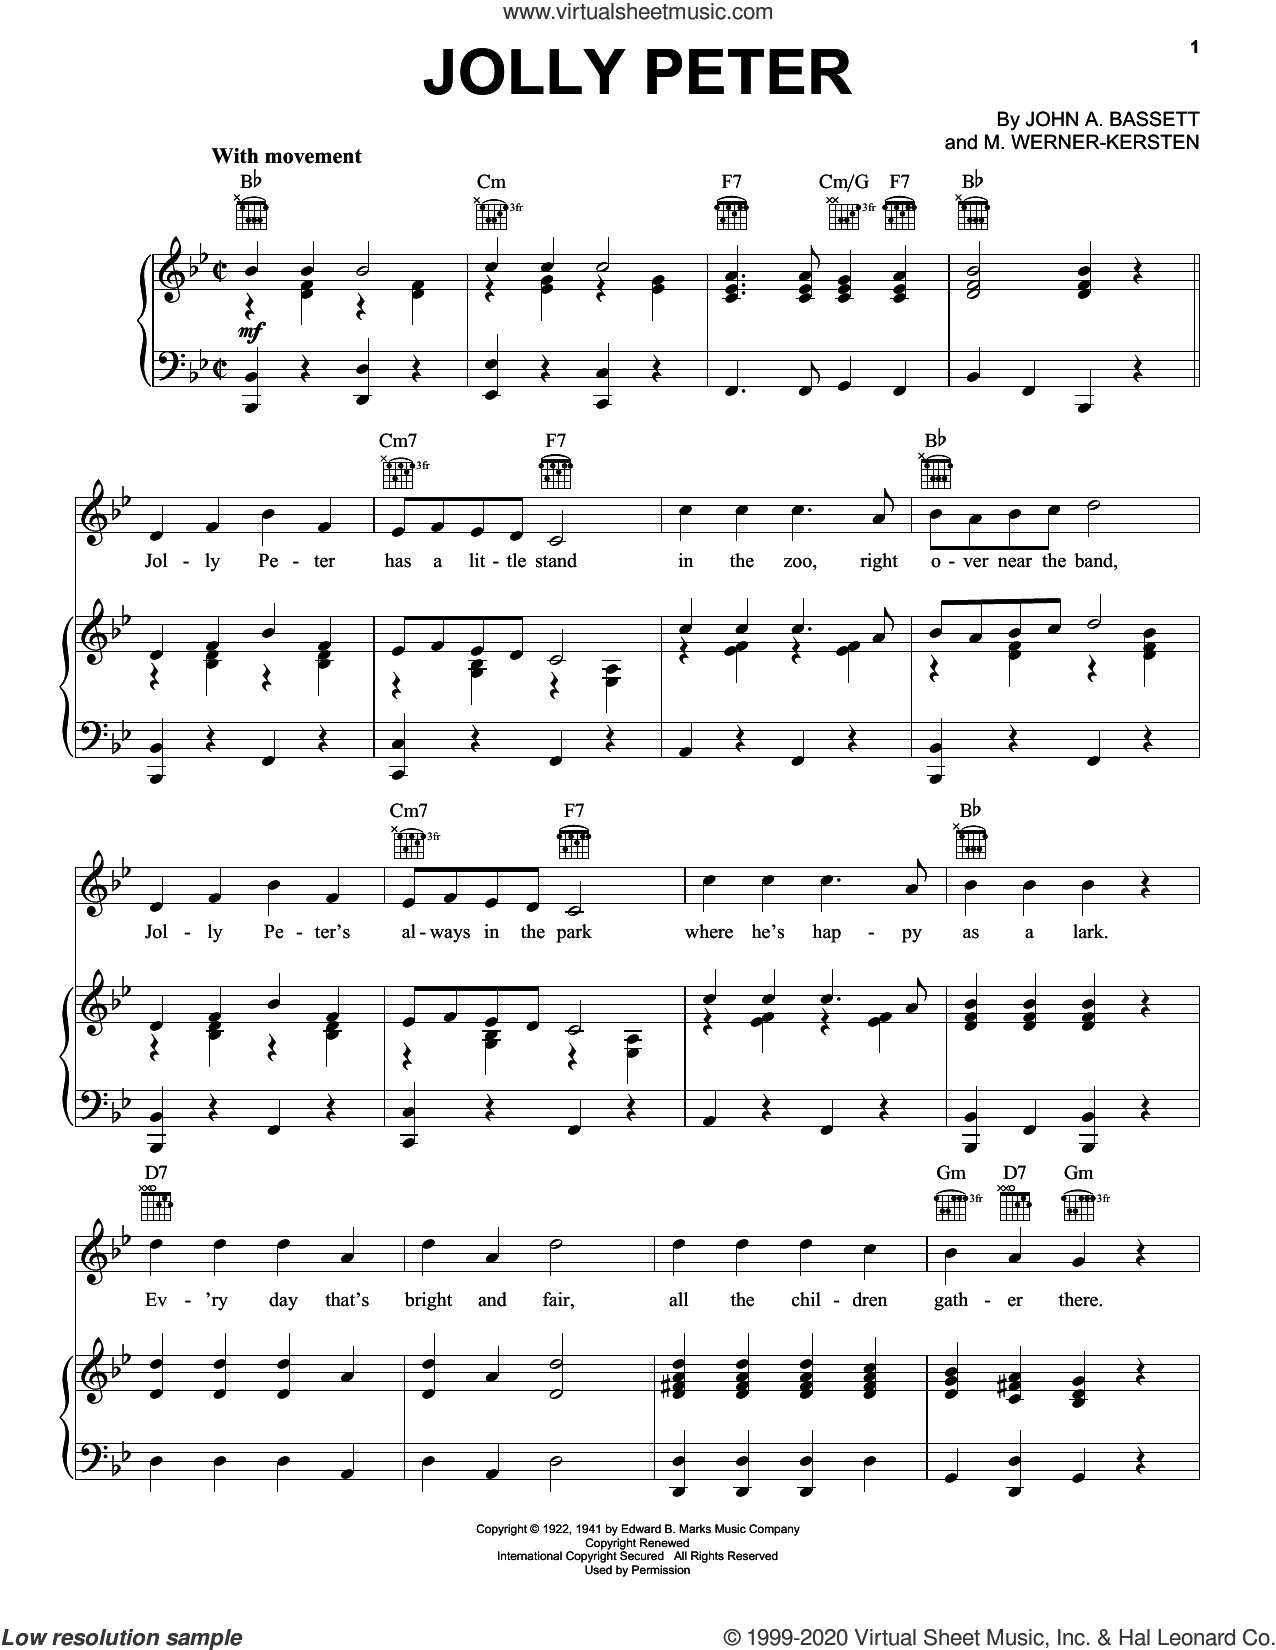 Jolly Peter sheet music for voice, piano or guitar by John A. Bassett and M. Werner - Kersten, intermediate skill level